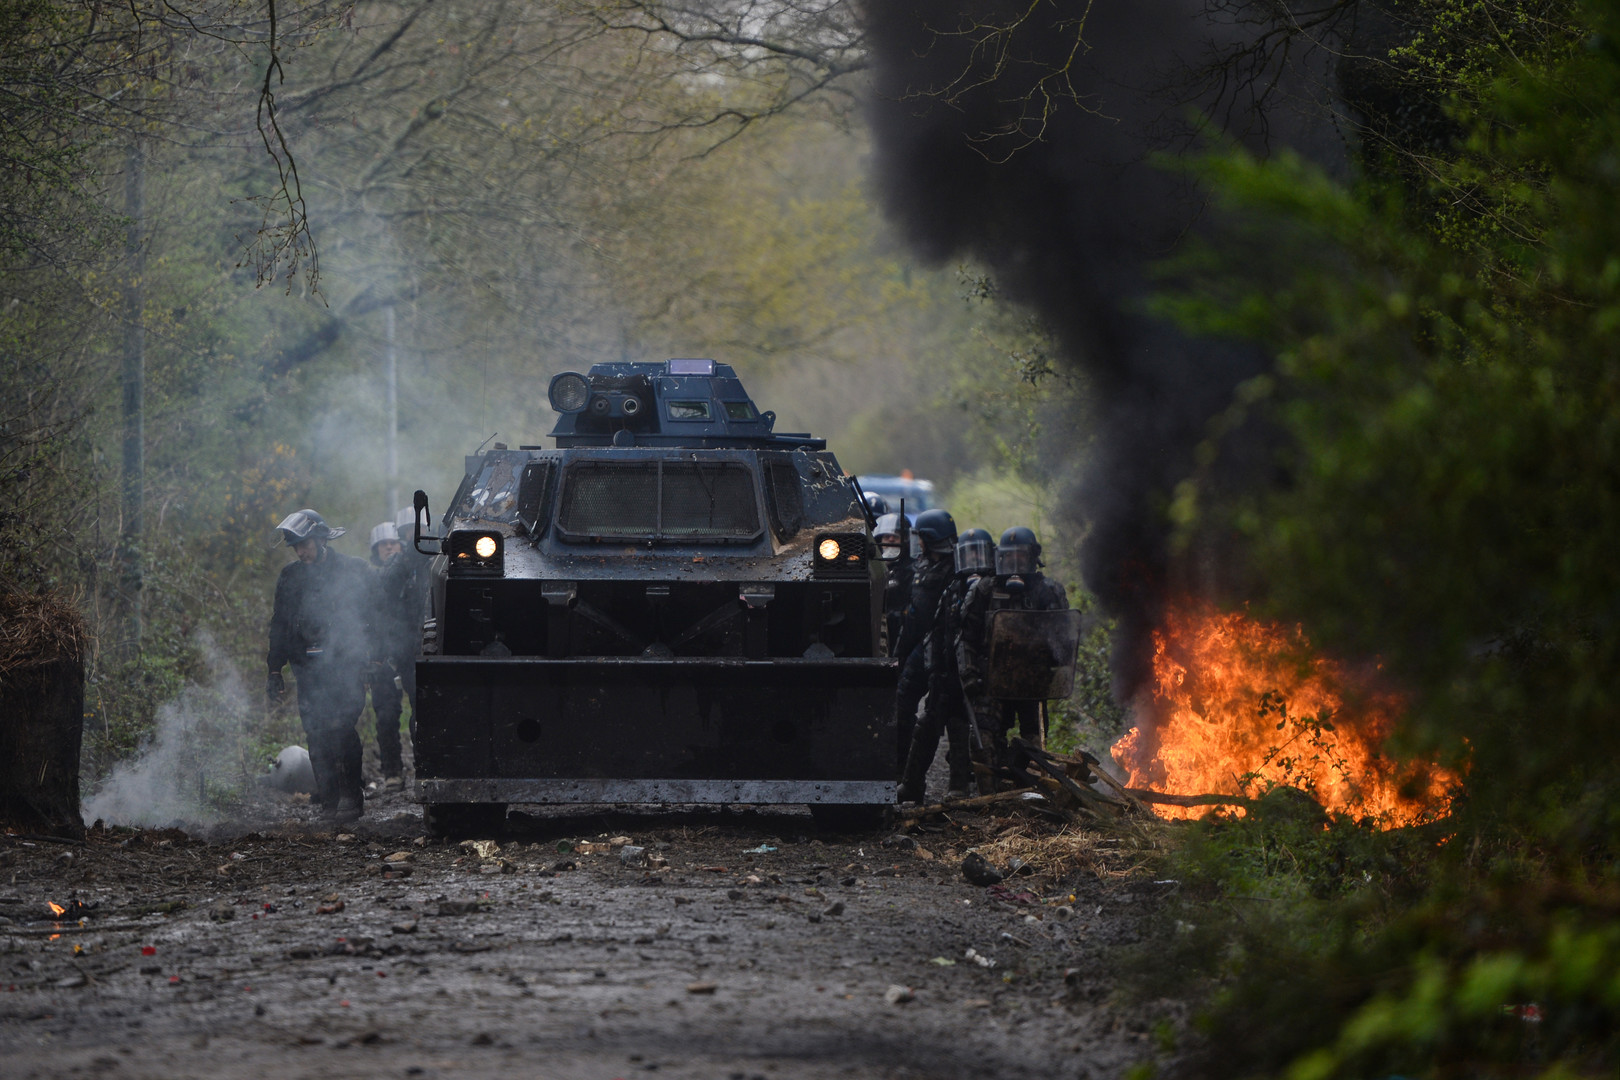 Violences, affrontements : le bilan des opérations d'expulsions de la ZAD de NDDL (PHOTOS, VIDEOS)